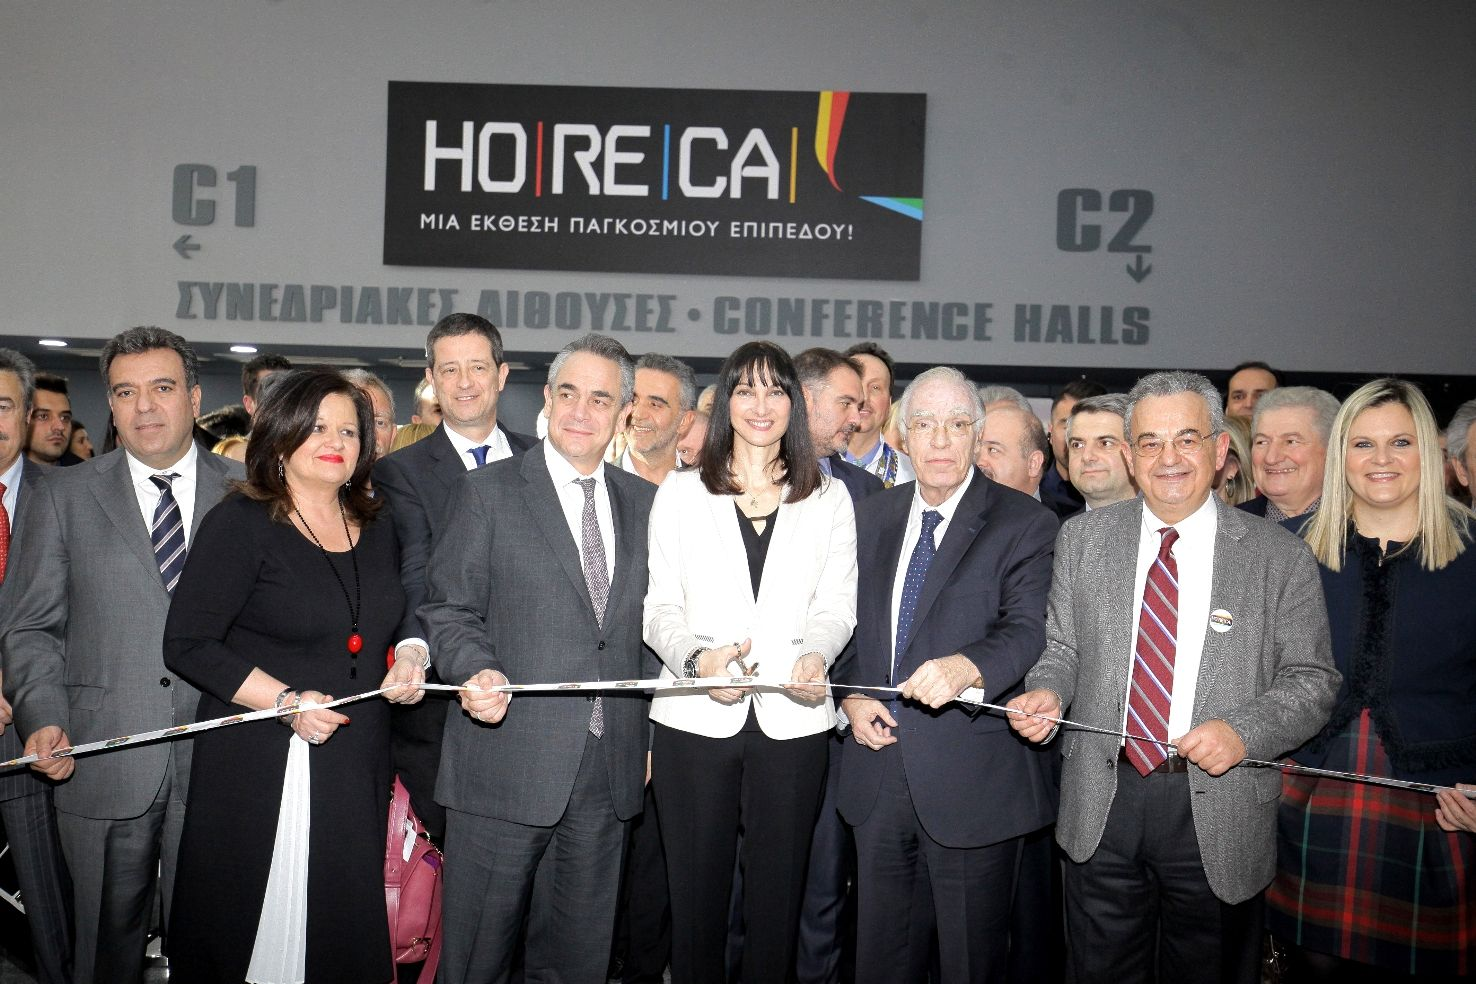 Greek Tourism Minister Elena Kountoura inaugurating the HORECA 2018 expo.